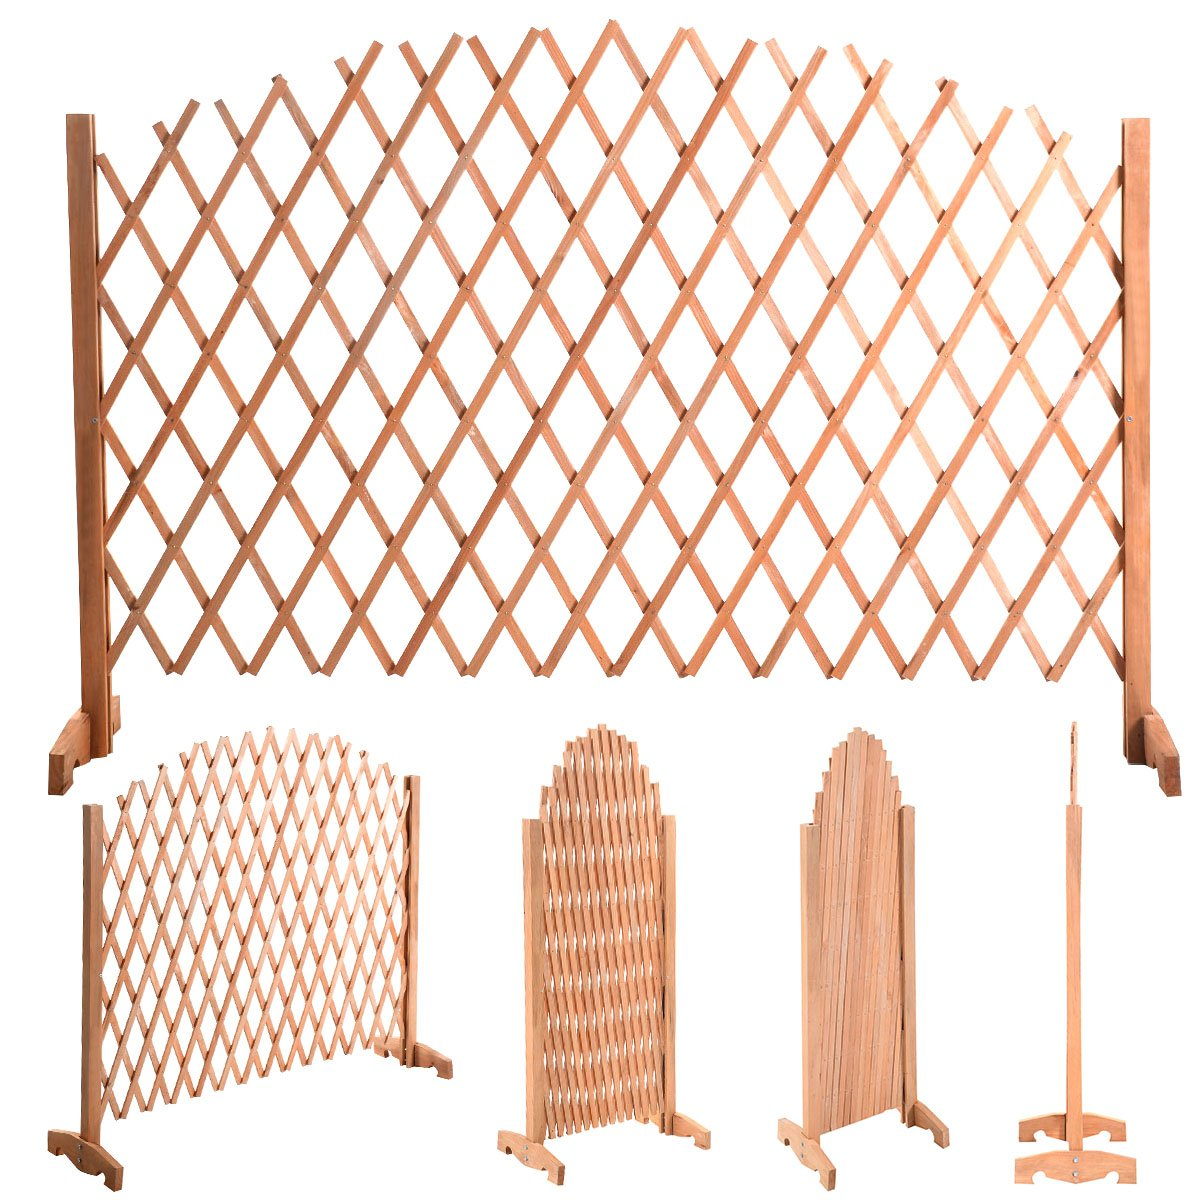 Casart Wooden Expanding Fence Freestanding Arched Trellis Protection Adjustable Screen Divider Growing Support Outdoor Garden 1.80 m x 1.18 m